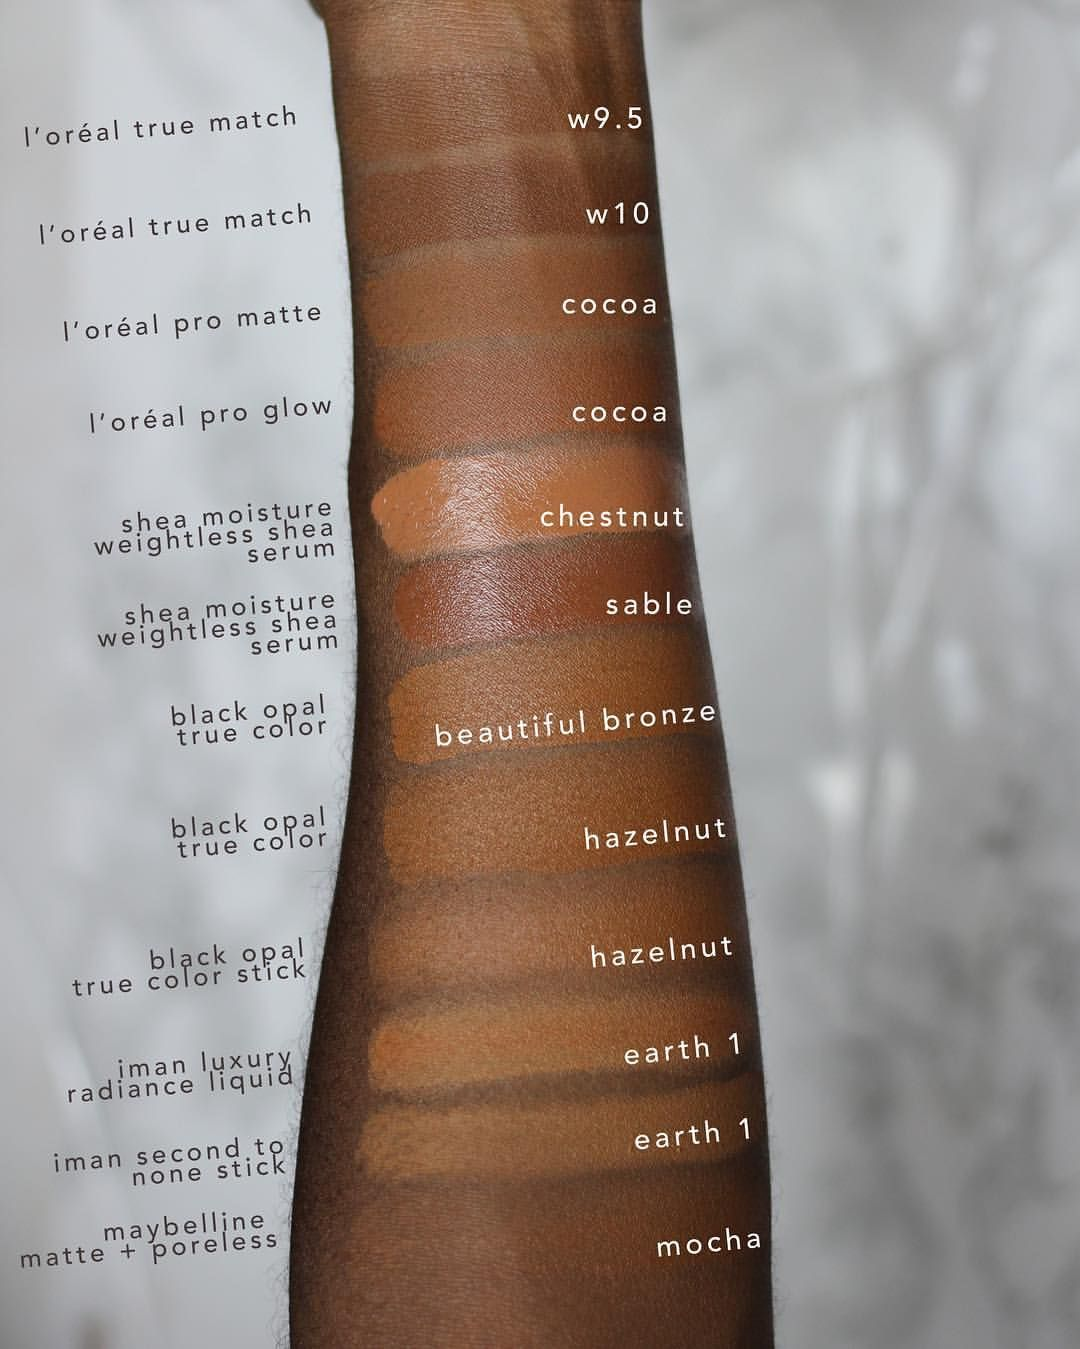 Pin by FAD KILLER on VANITY 9 in 2019 | Dark skin makeup ...